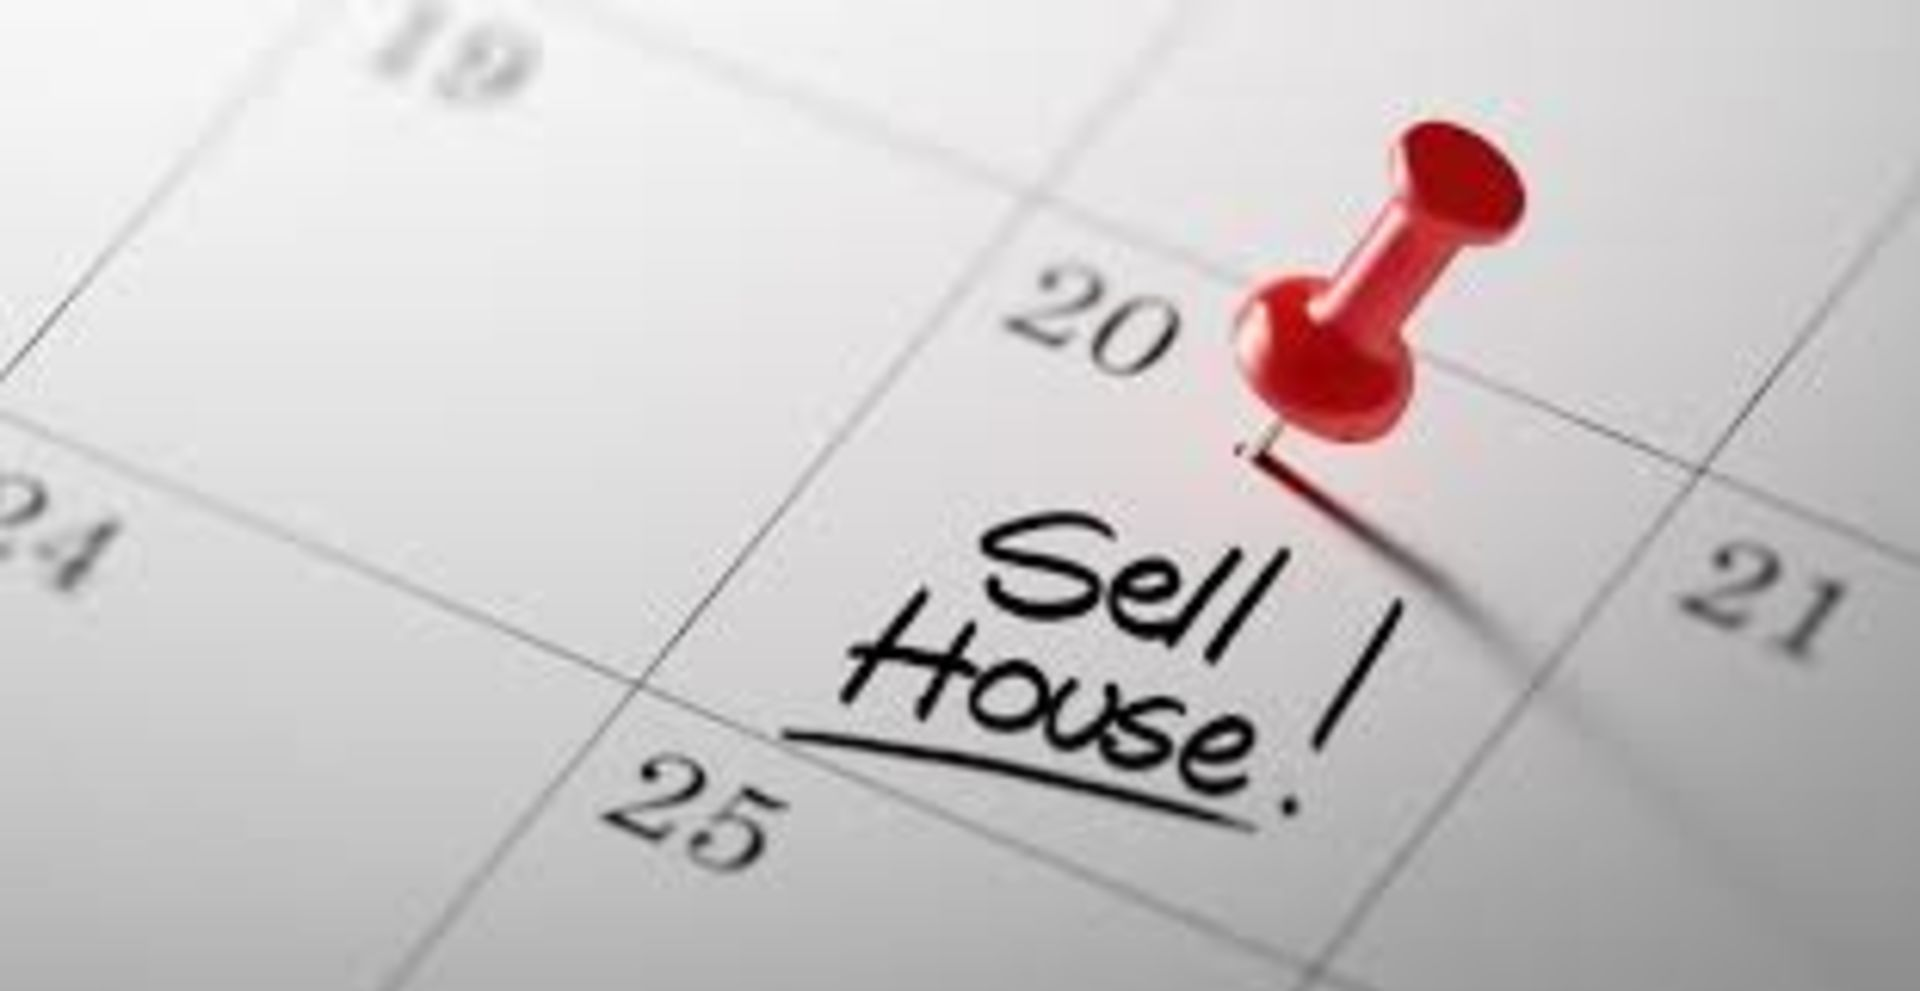 NAR Reports Show Now Is a Great Time to Sell!